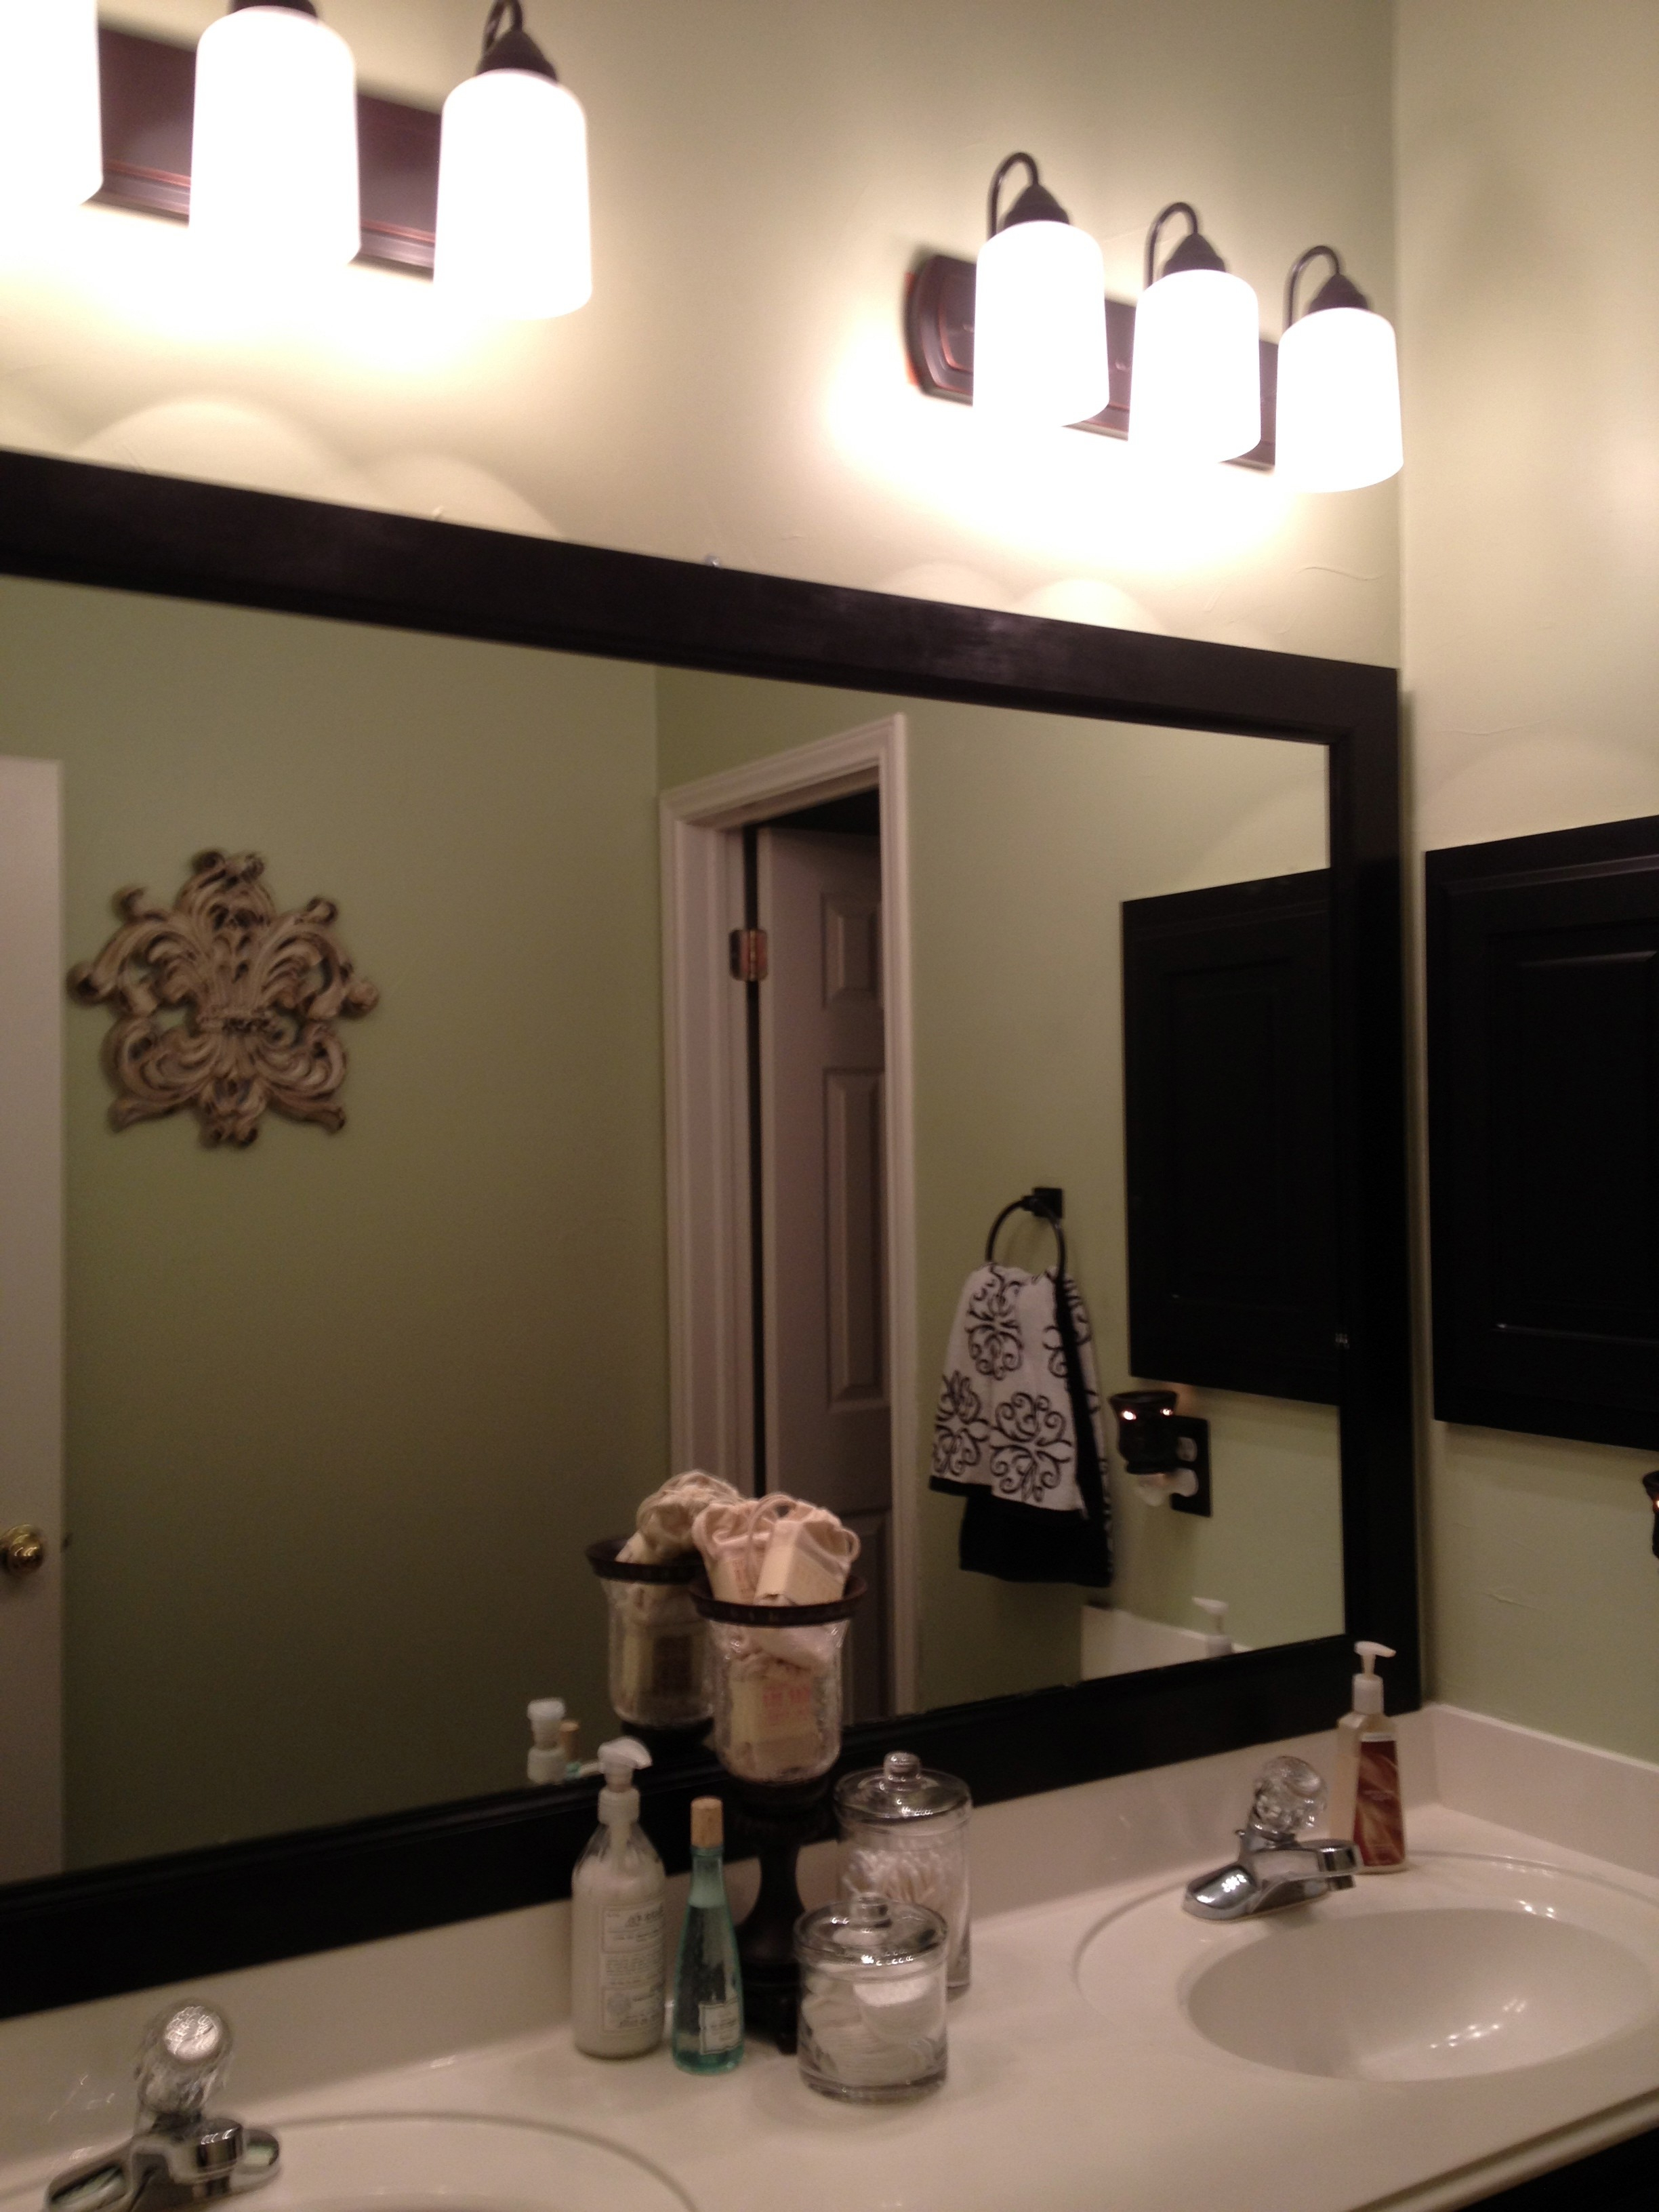 Best And Newest Frame Bathroom Wall Mirrors Within Exclusive Design Frames For Bathroom Wall Mirrors Diy Framed (View 4 of 20)